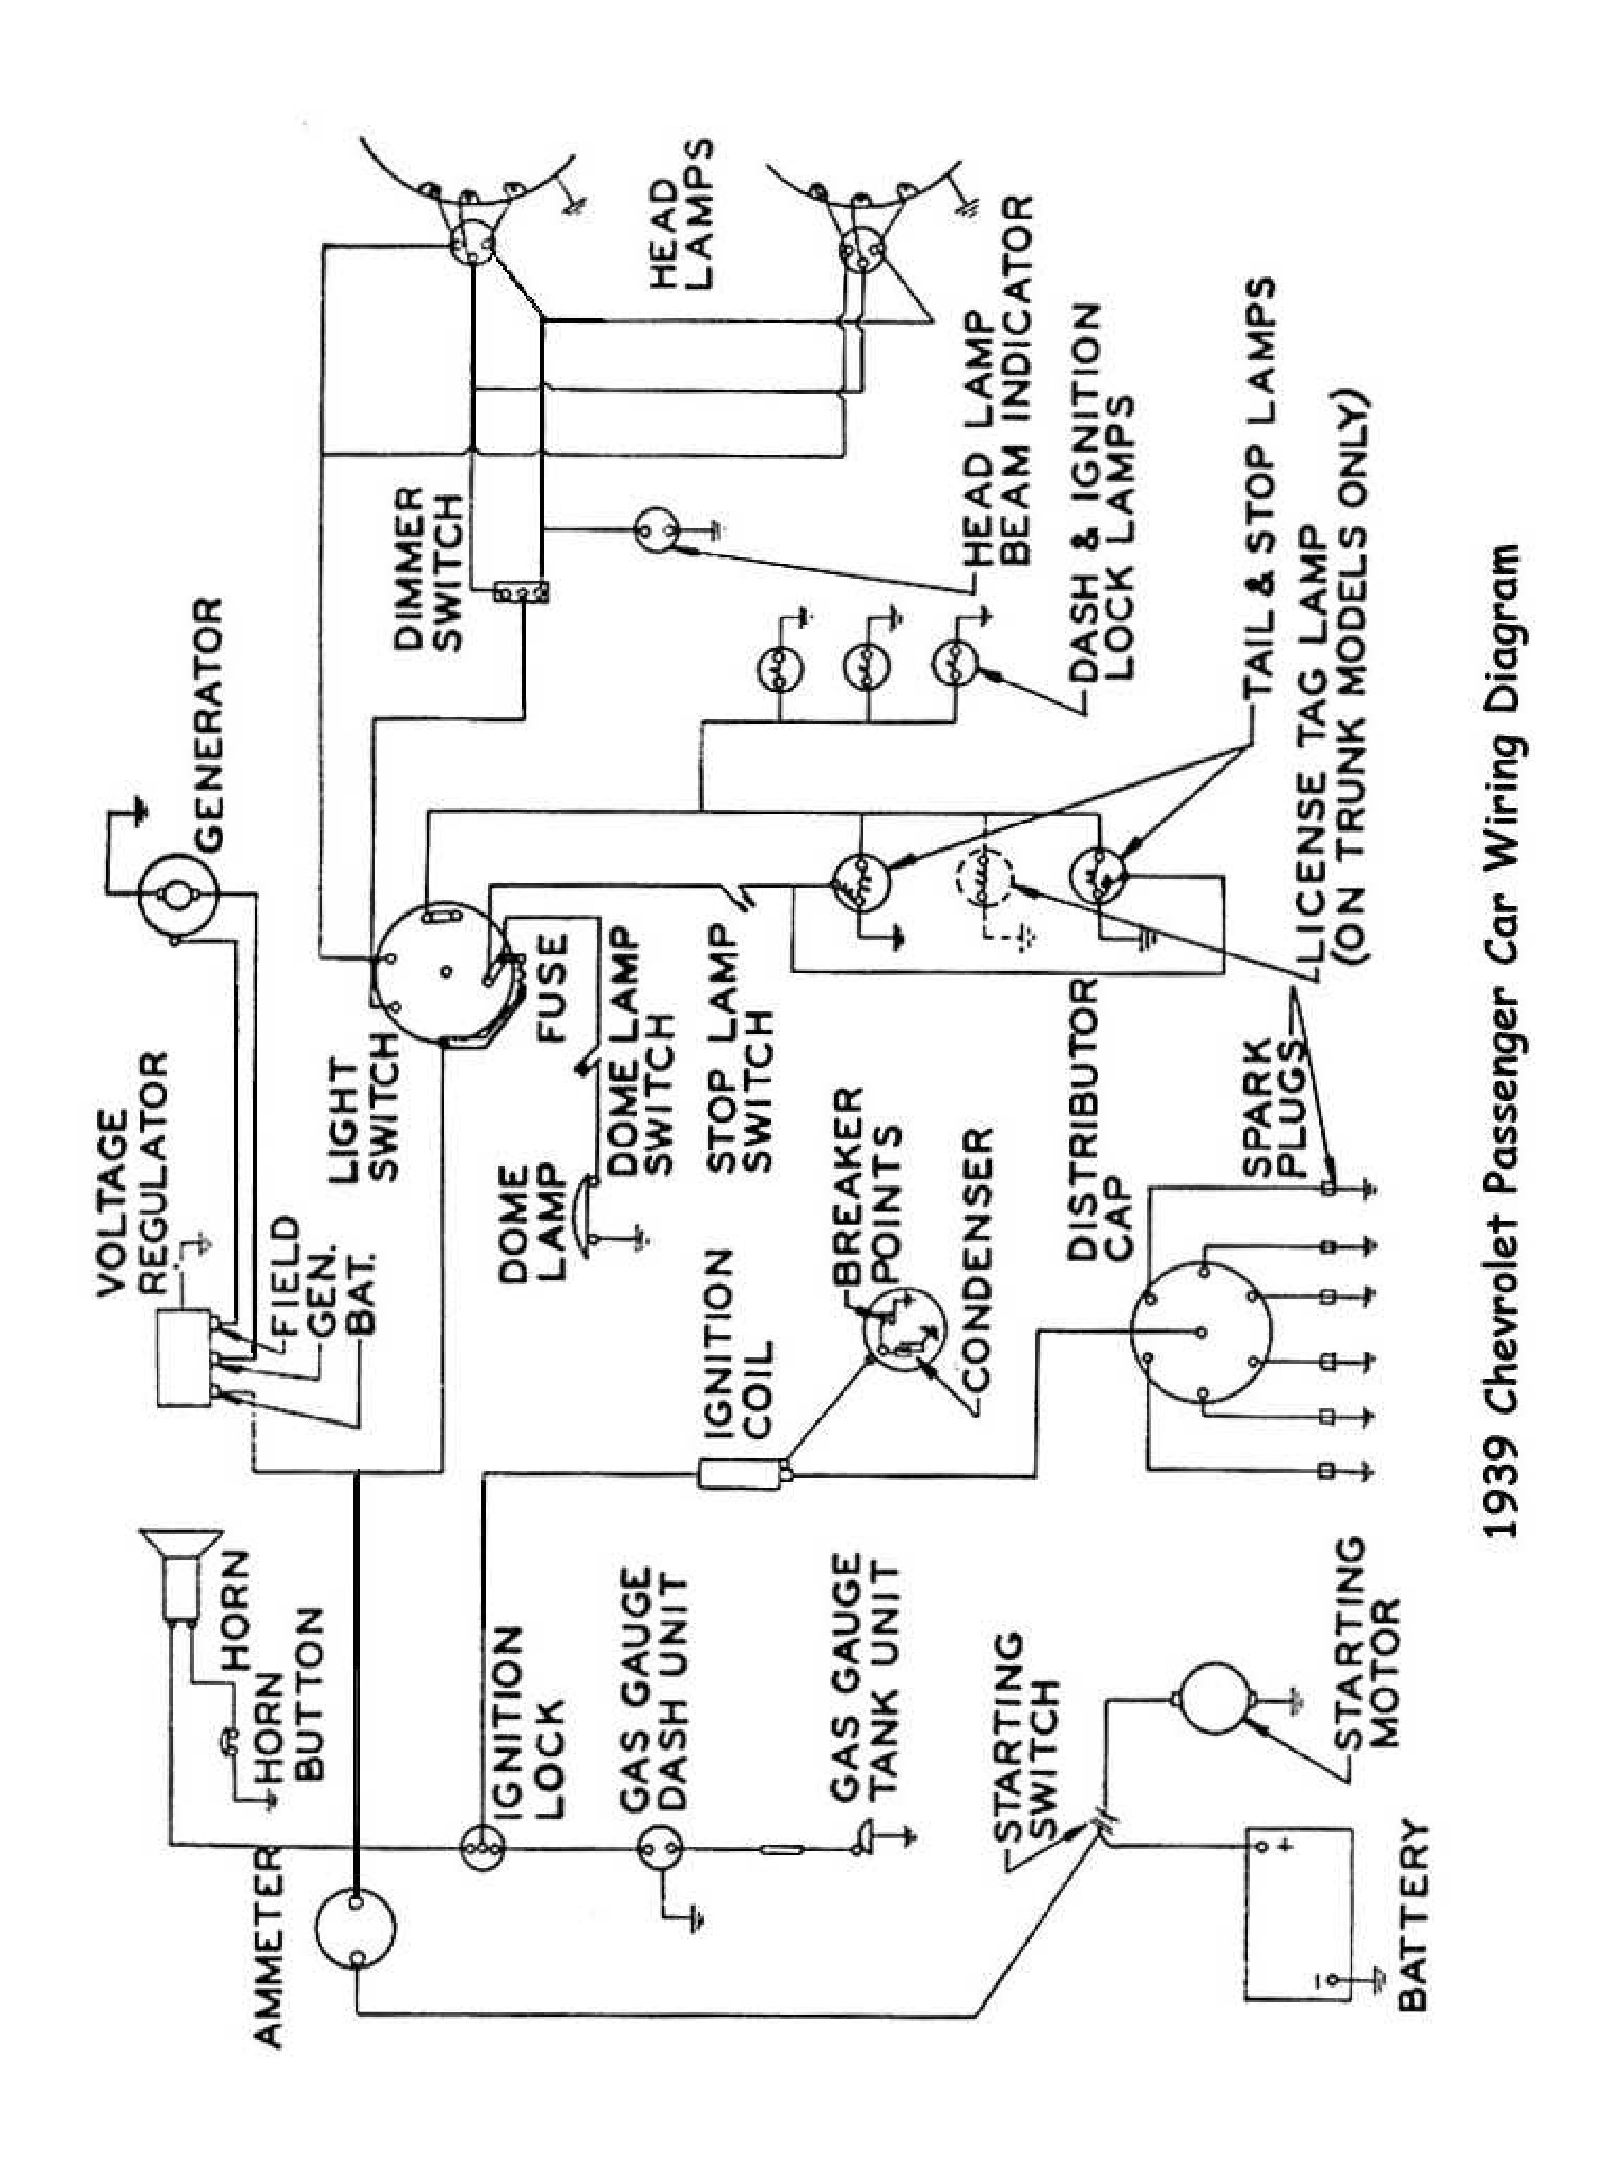 race car wiring diagram hei wiring library Hei Ignition Wiring Diagram chevy wiring diagrams rh chevy oldcarmanualproject com chevy race car